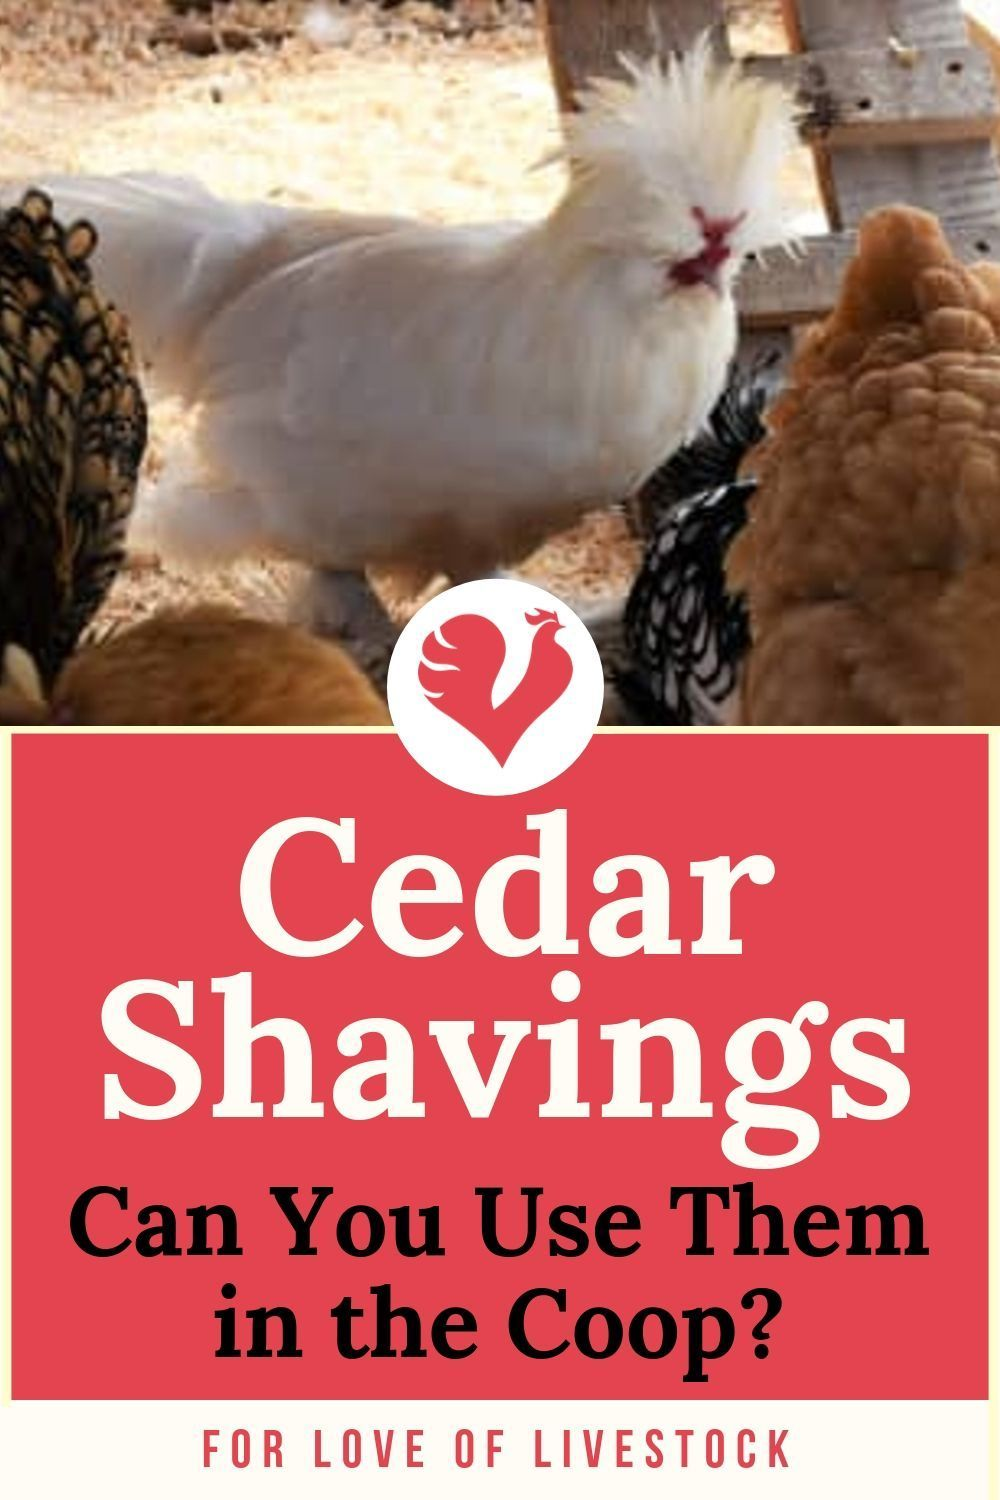 Why You Should NEVER Use Cedar Bedding in Chicken Coops